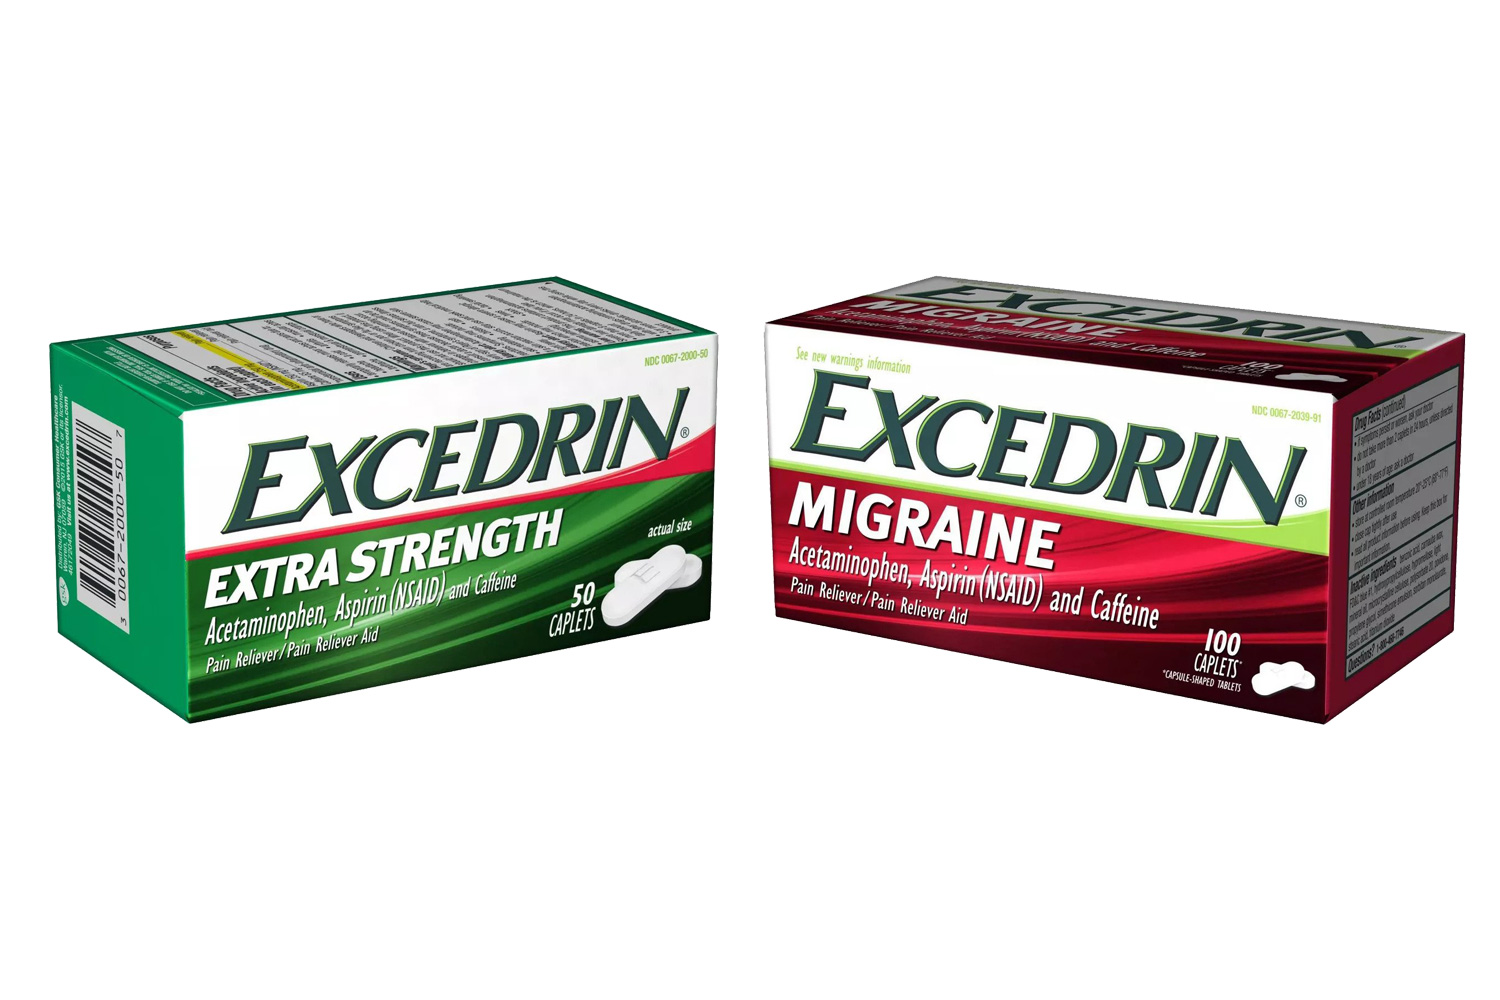 Excedrin Extra Strength and Excedrin Migraine